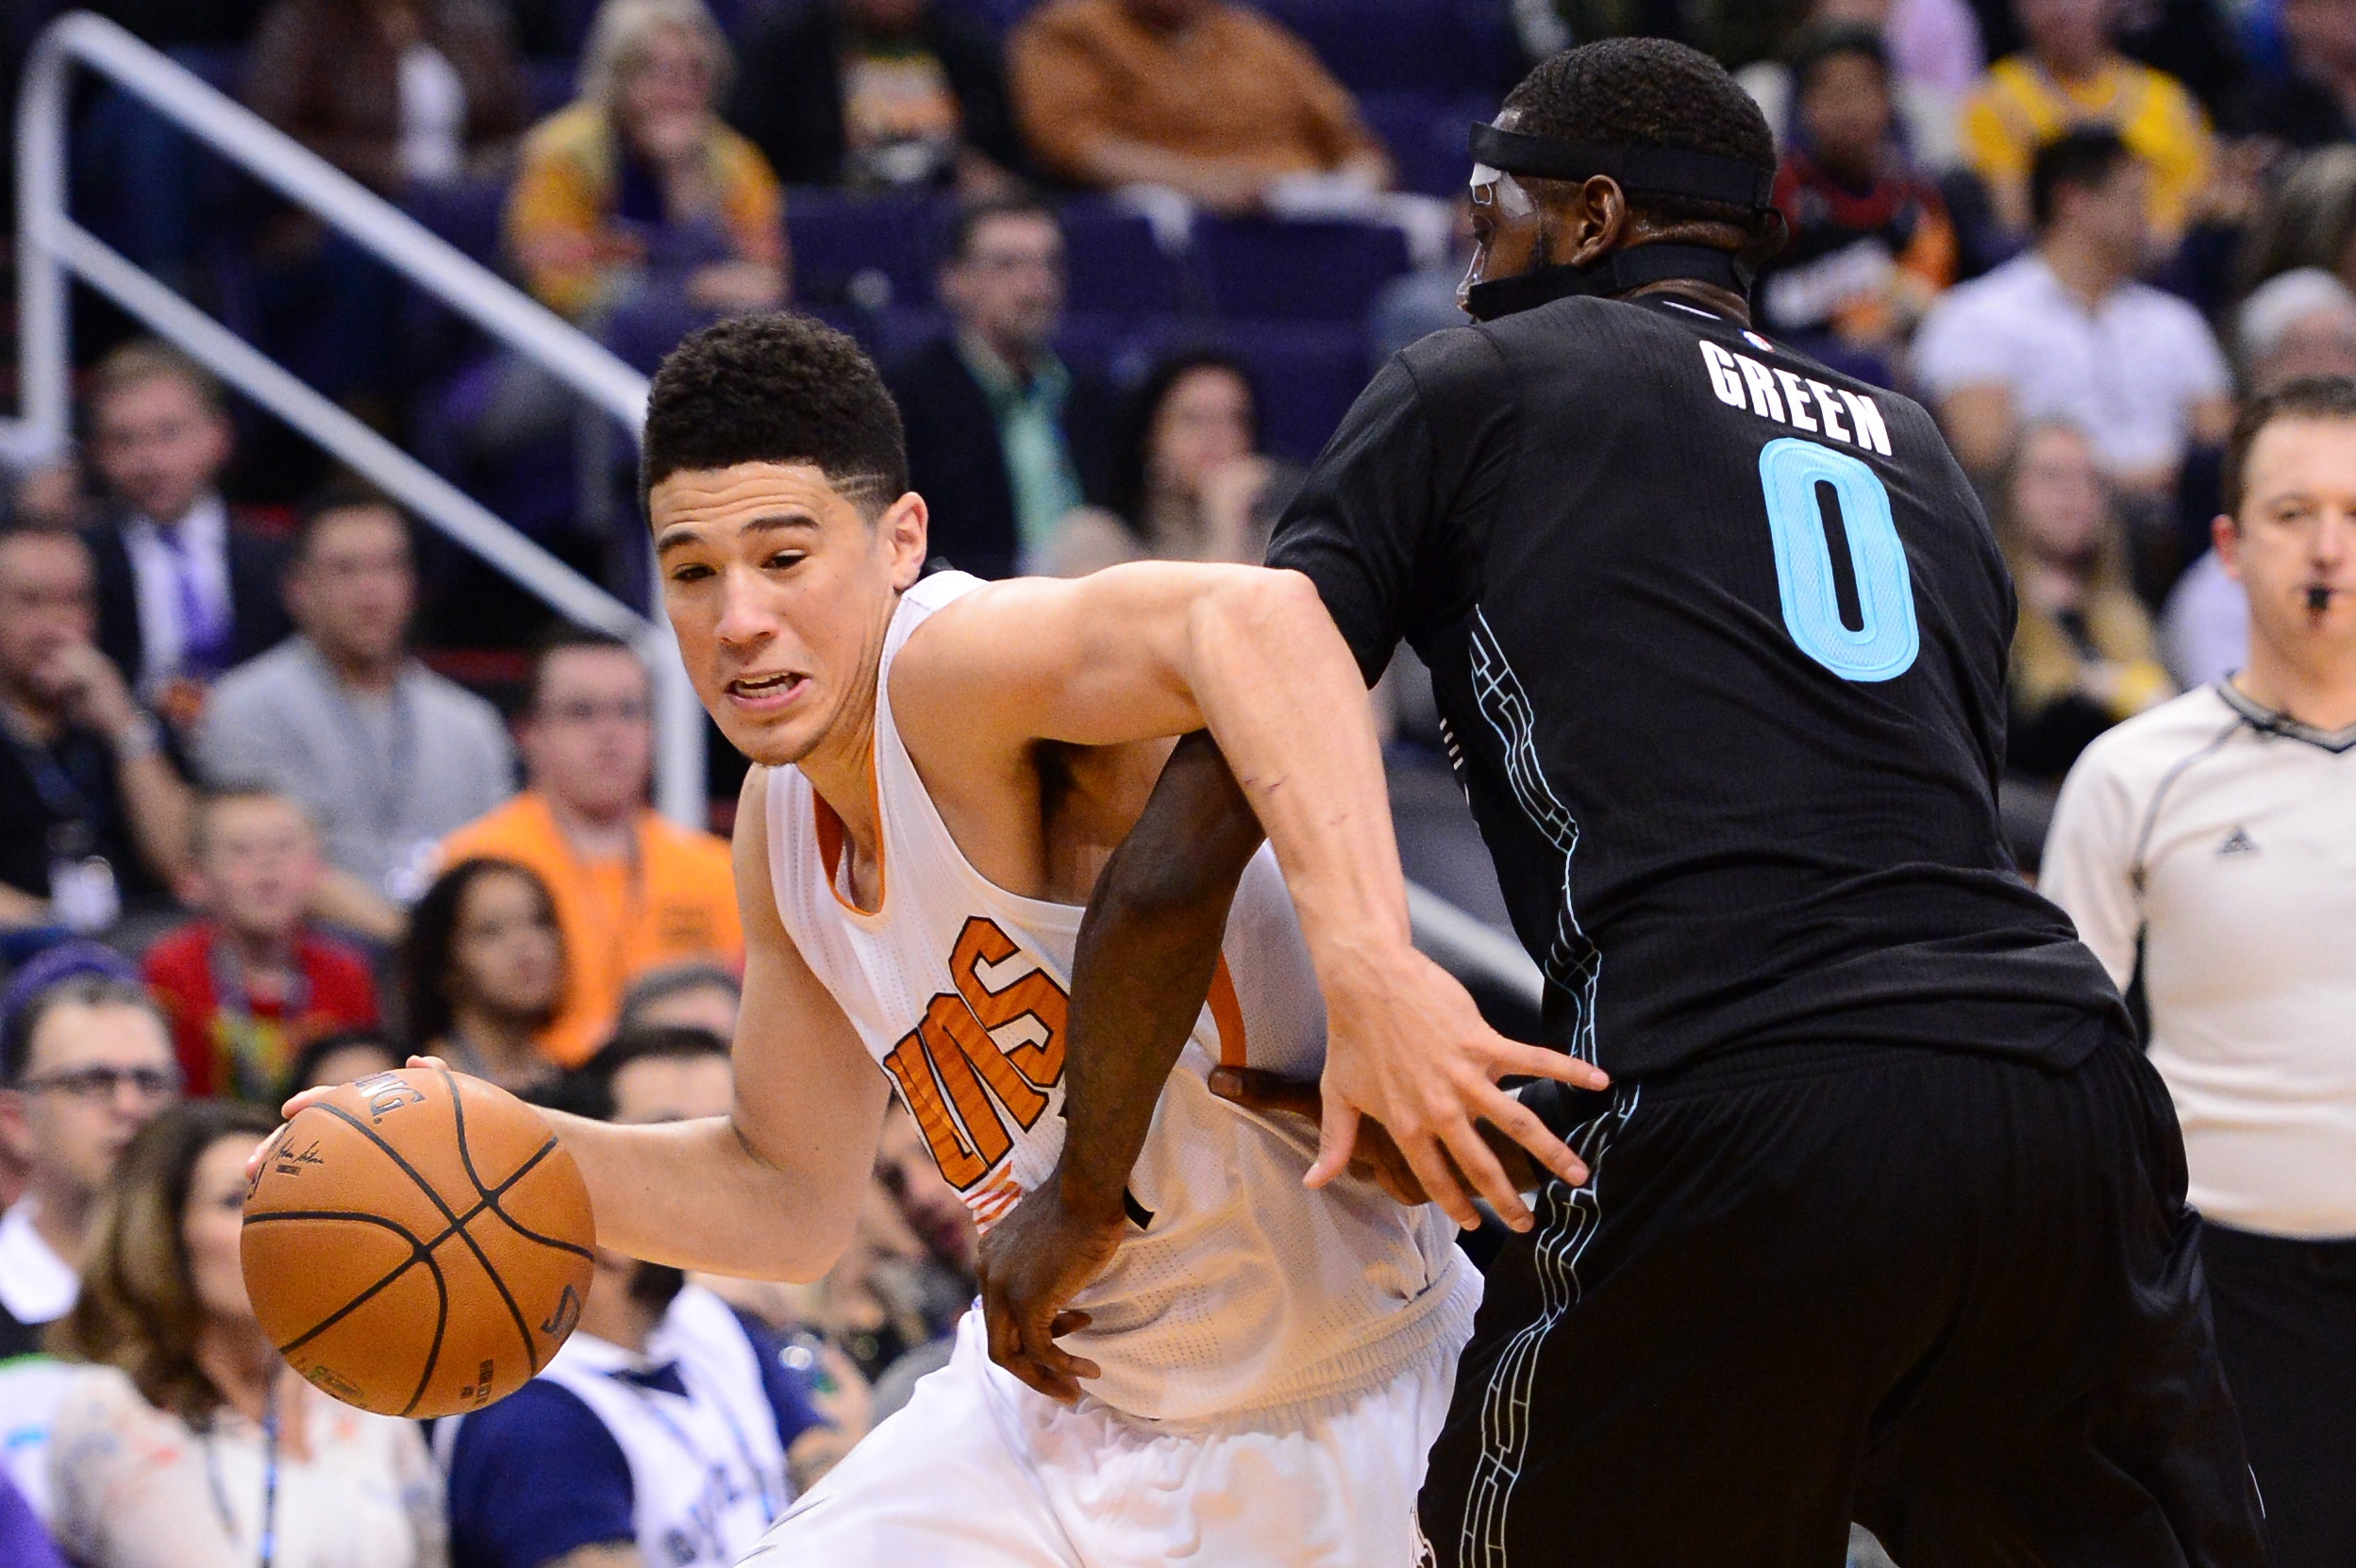 Jan 30, 2017; Phoenix, AZ, USA; Phoenix Suns guard Devin Booker (1) handles the ball against Memphis Grizzlies forward JaMychal Green (0) in the second half of the NBA game at Talking Stick Resort Arena. The Memphis Grizzlies won 115-96. Mandatory Credit: Jennifer Stewart-USA TODAY Sports